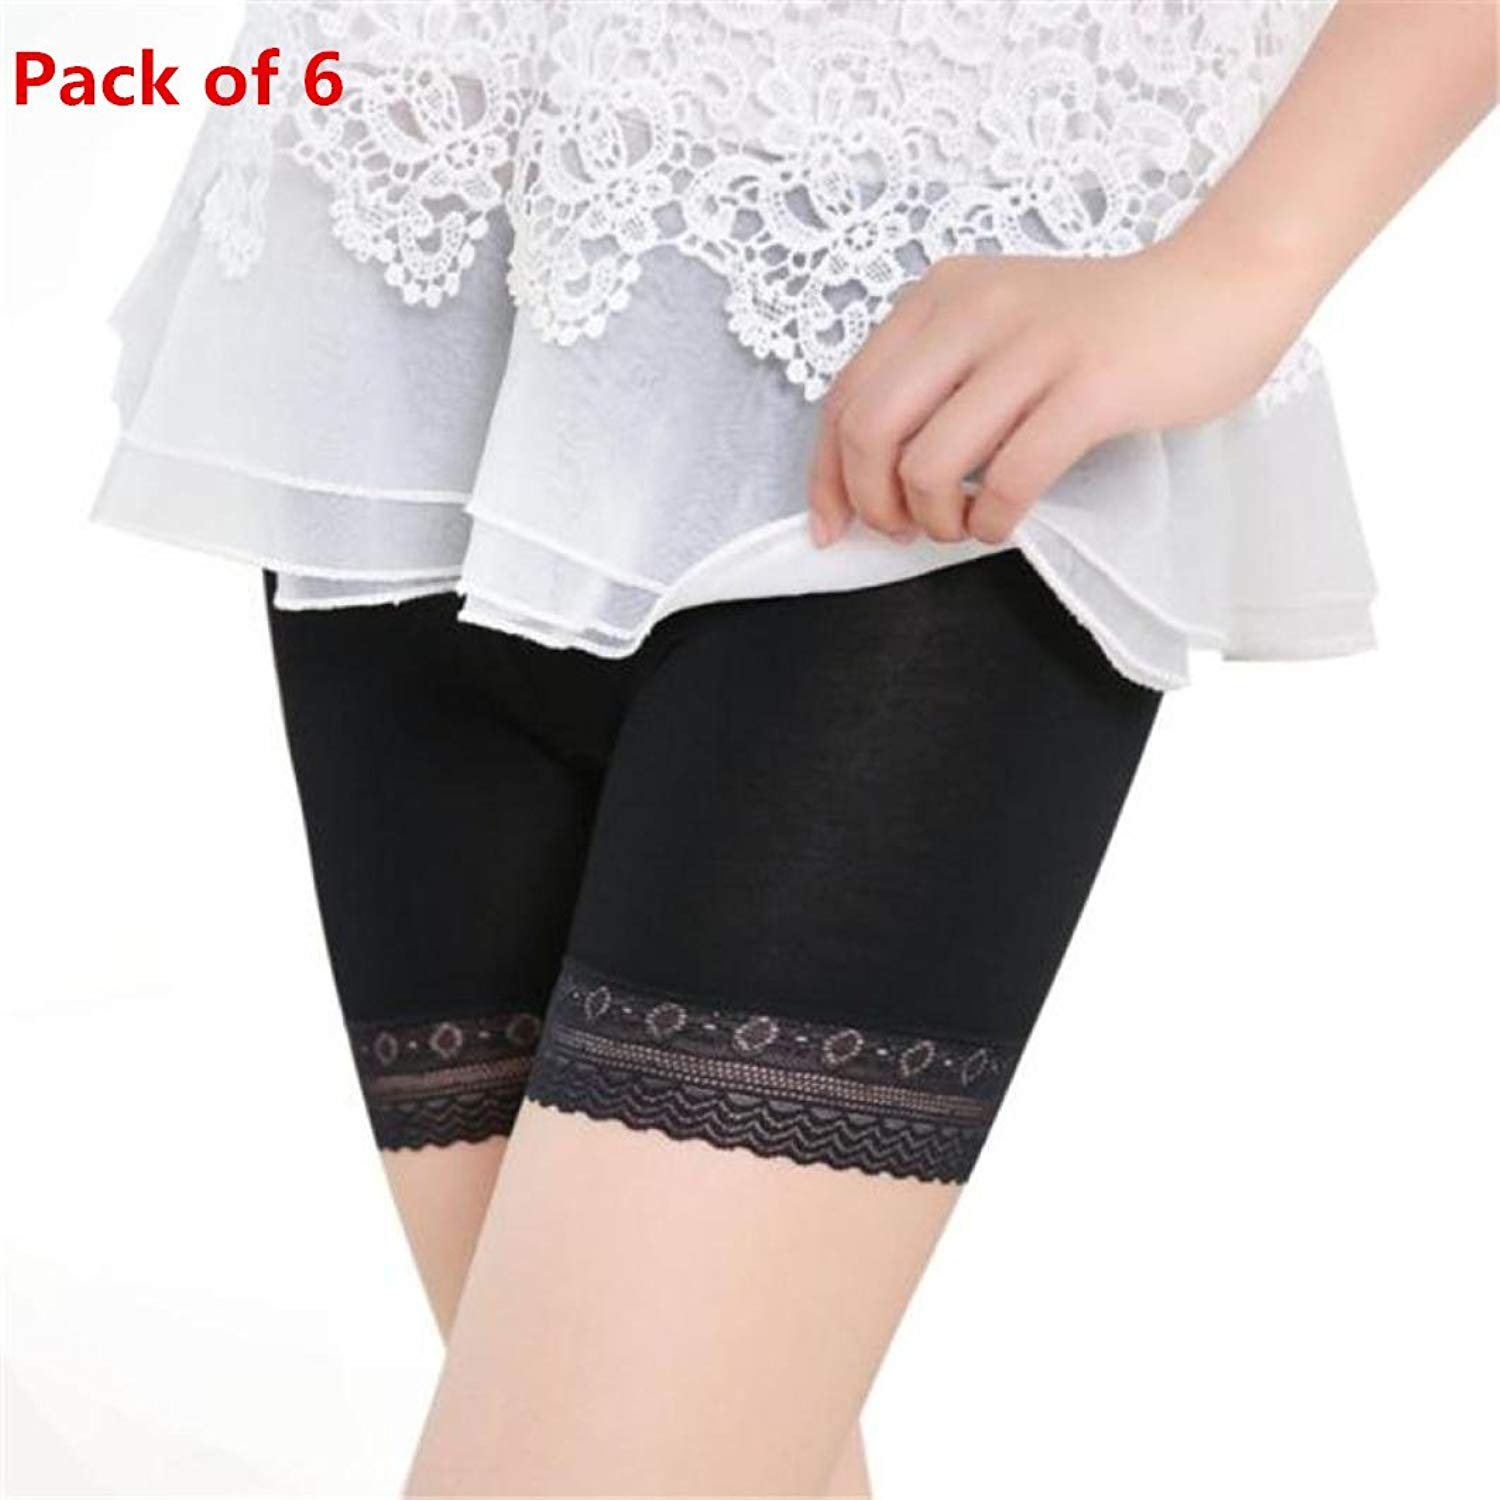 eb37ae399b9 Get Quotations · Goodtrade8® 6-Pack Women s Trimmed Lace Boy Short Panties  Regular   Plus Size Lace